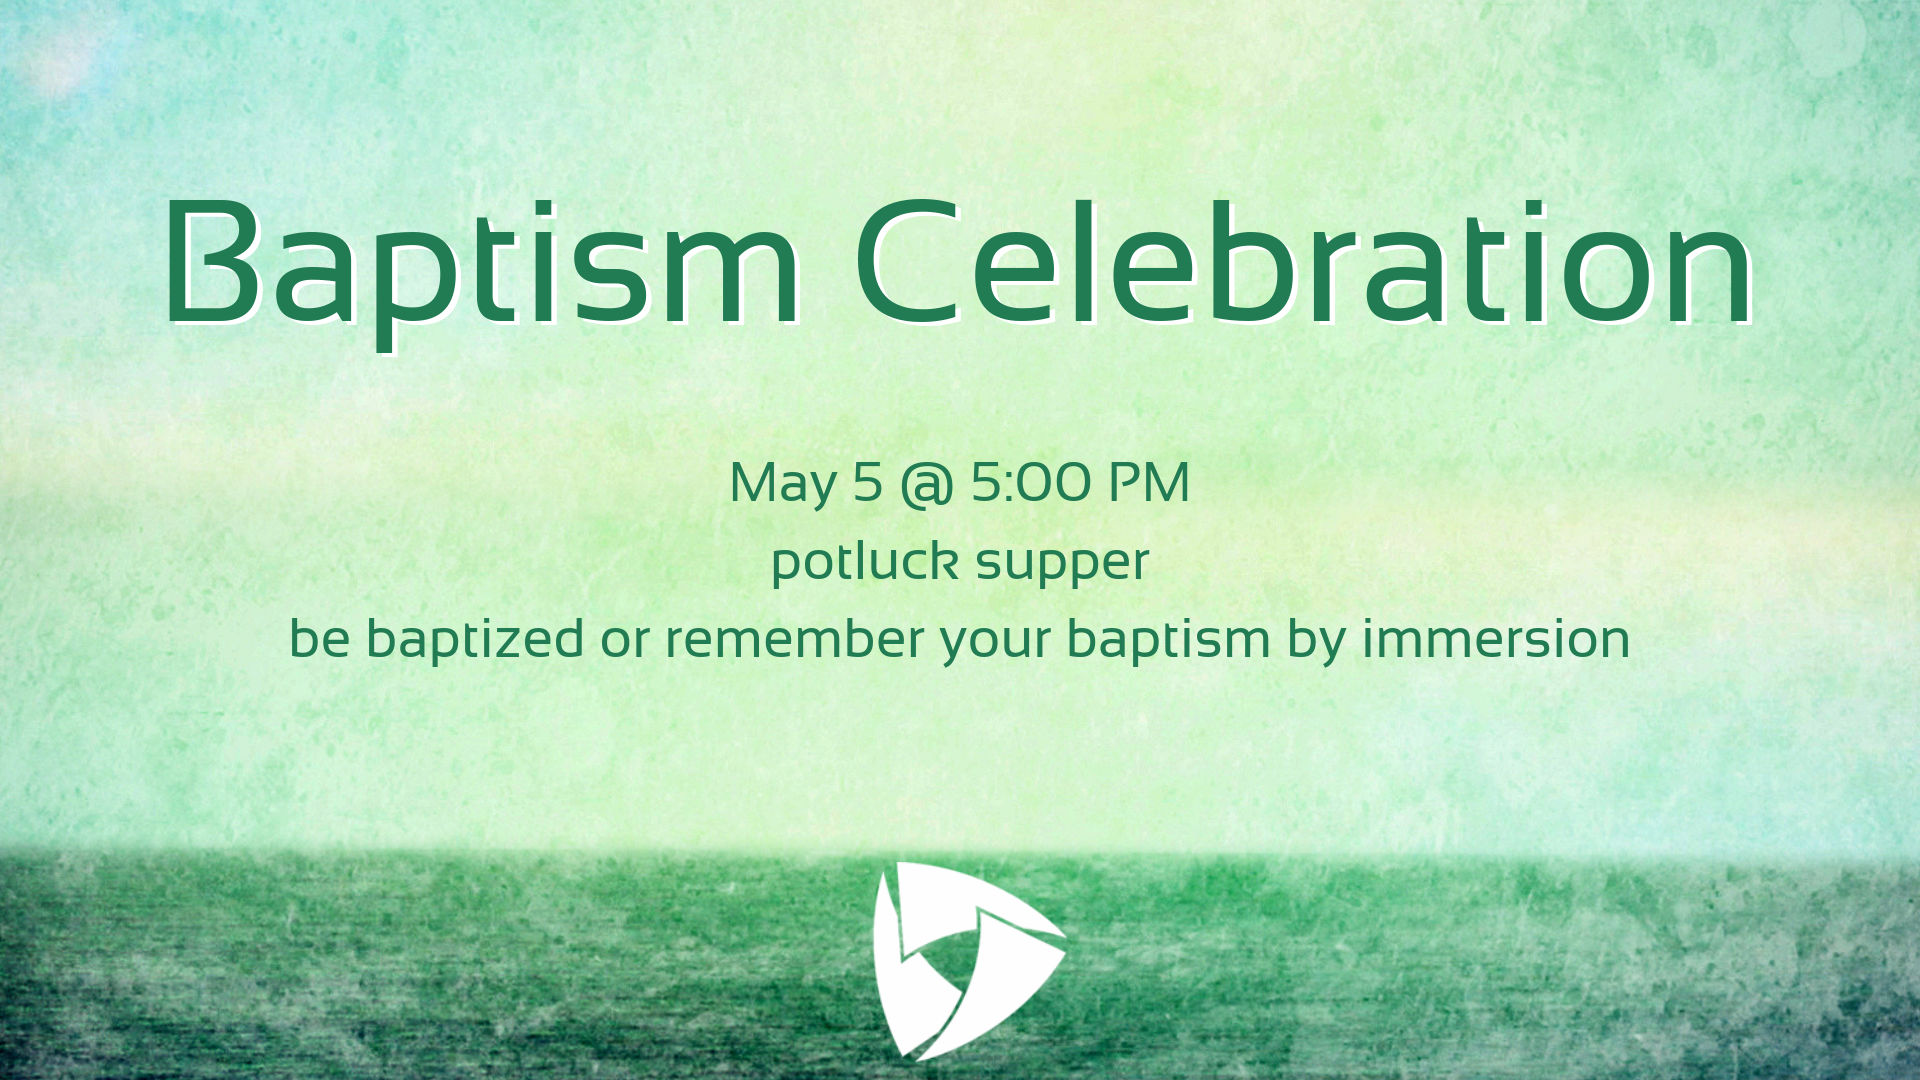 Sign up today for the Baptism Celebration and Potluck Supper. Visit:  https://christchurchia.churchcenter.com/registrations/events .   Please register if you are planning on coming whether or not you plan on being baptized or remembering your baptism. This will help us setup the room adequately for the event.  Bring a dish to share and we'll provide the plates, silverware and beverages! See you there!